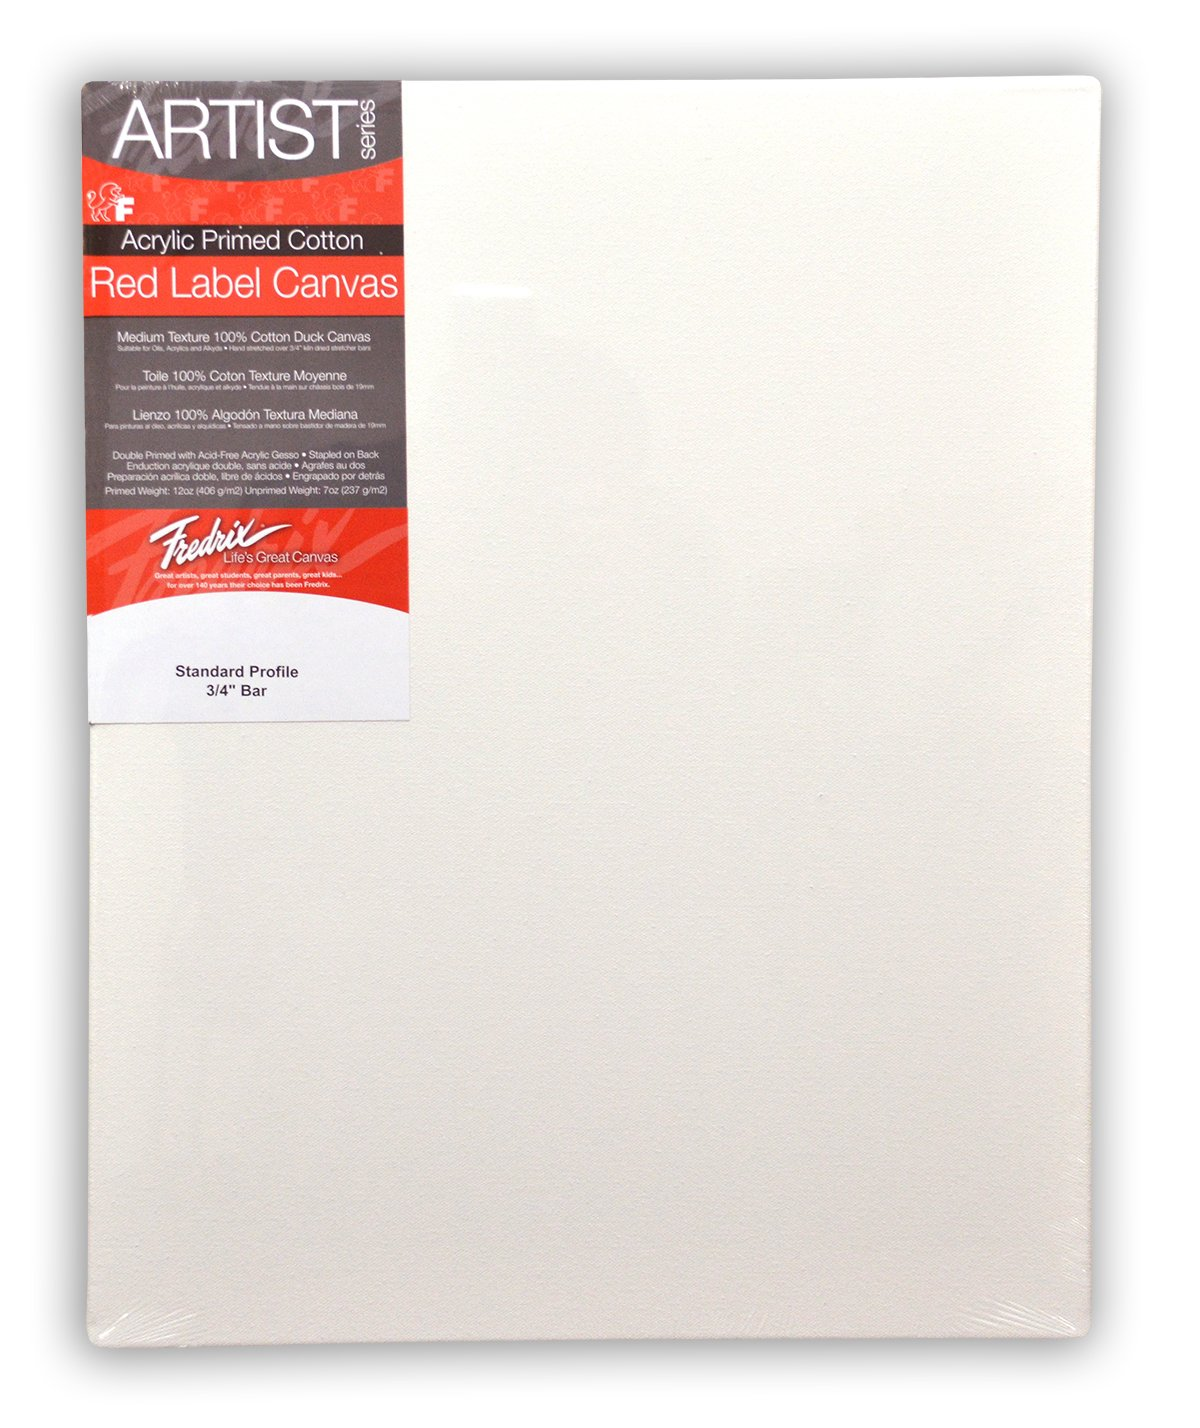 Markin Arts Finesse Series Swedish Pinewood Acid//Discolor Free 100/% Cotton 10oz Triple Titanium Acrylic Gesso Primed Horizontal Vertical Long Stretched Art Canvas Home D/écor Oil Paint 4x12 2-Pack